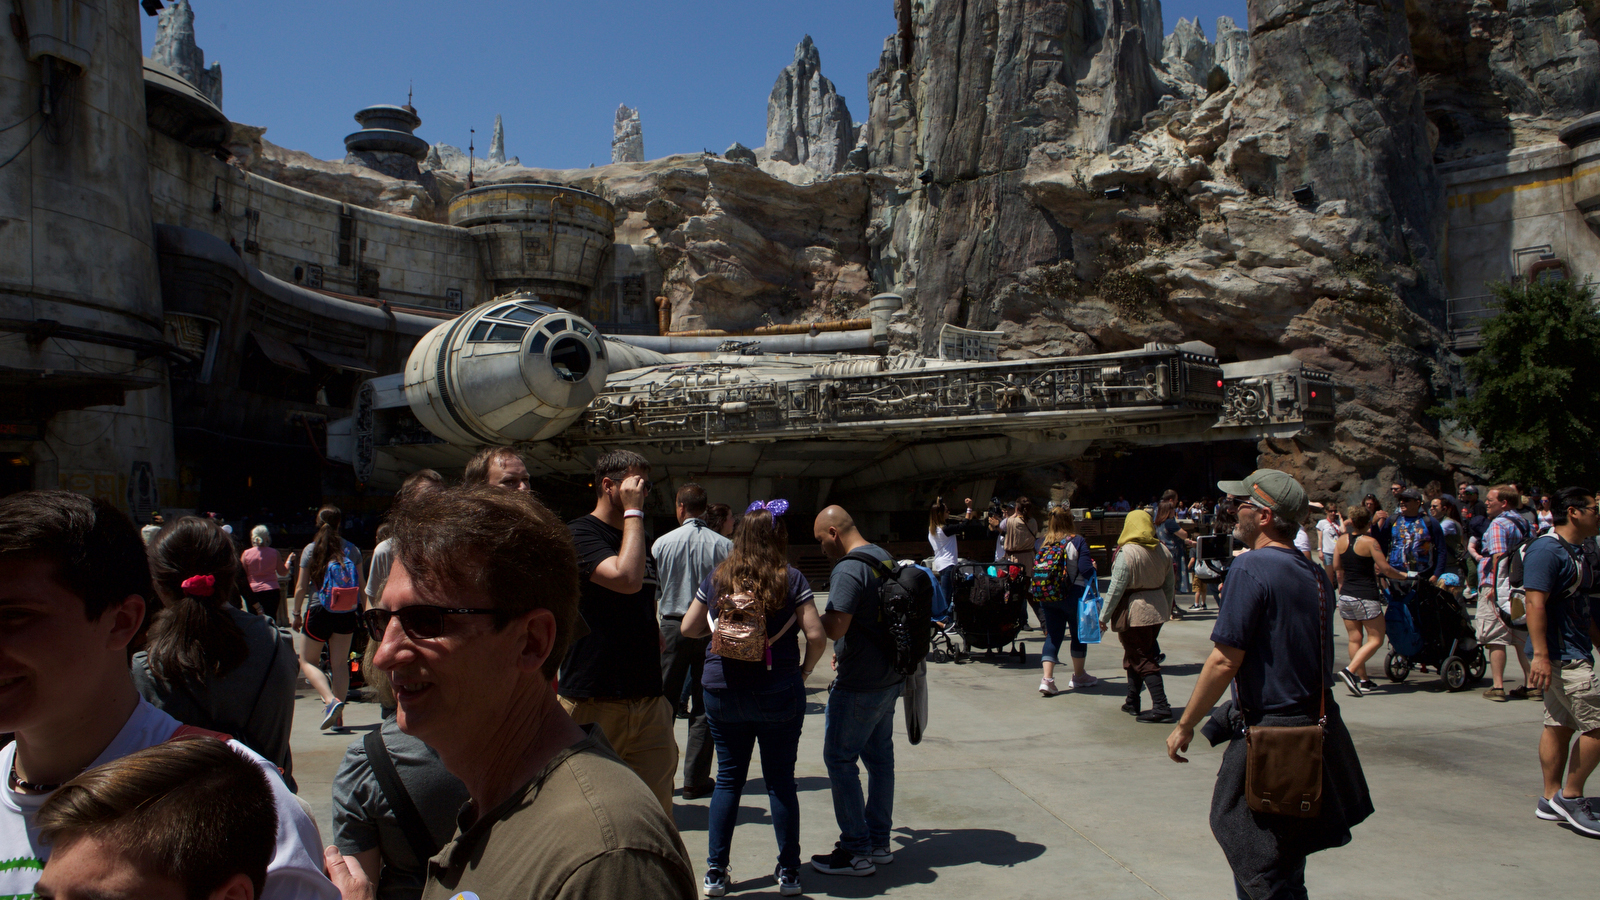 Star Wars: Galaxy's Edge opening day from inside Disneyland